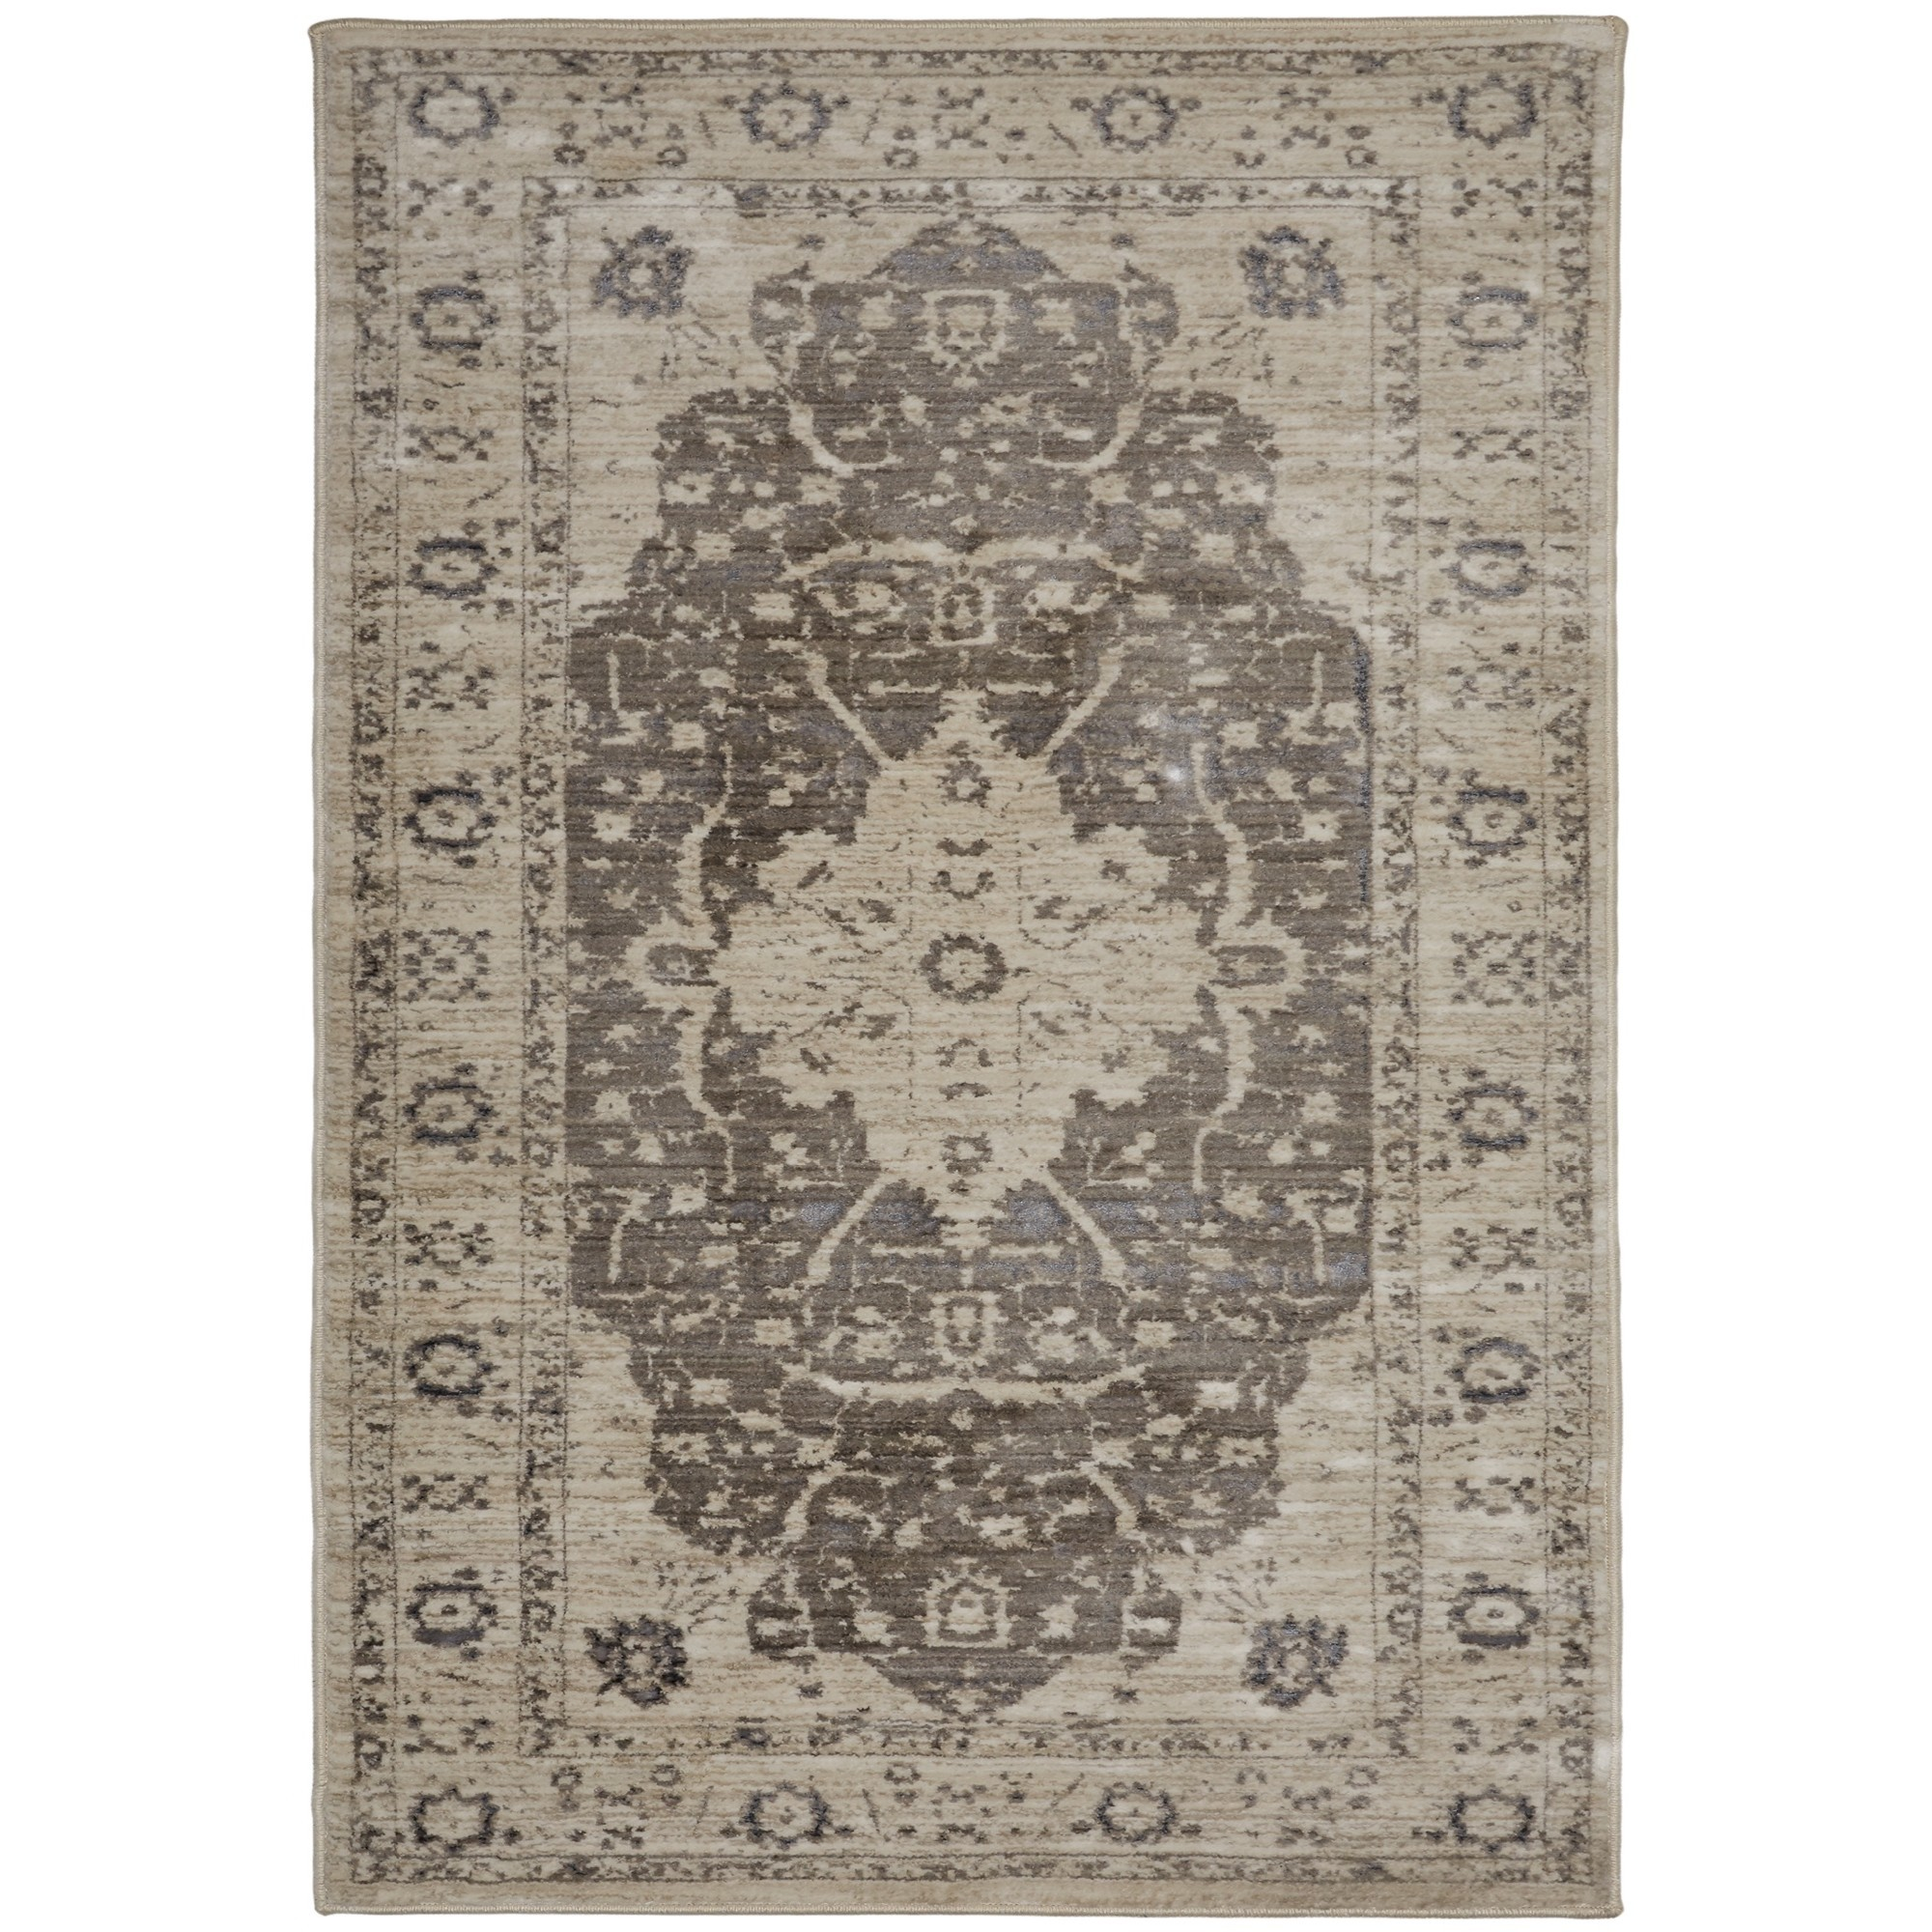 Vintage No.034 Transitional Rug, 330x240cm